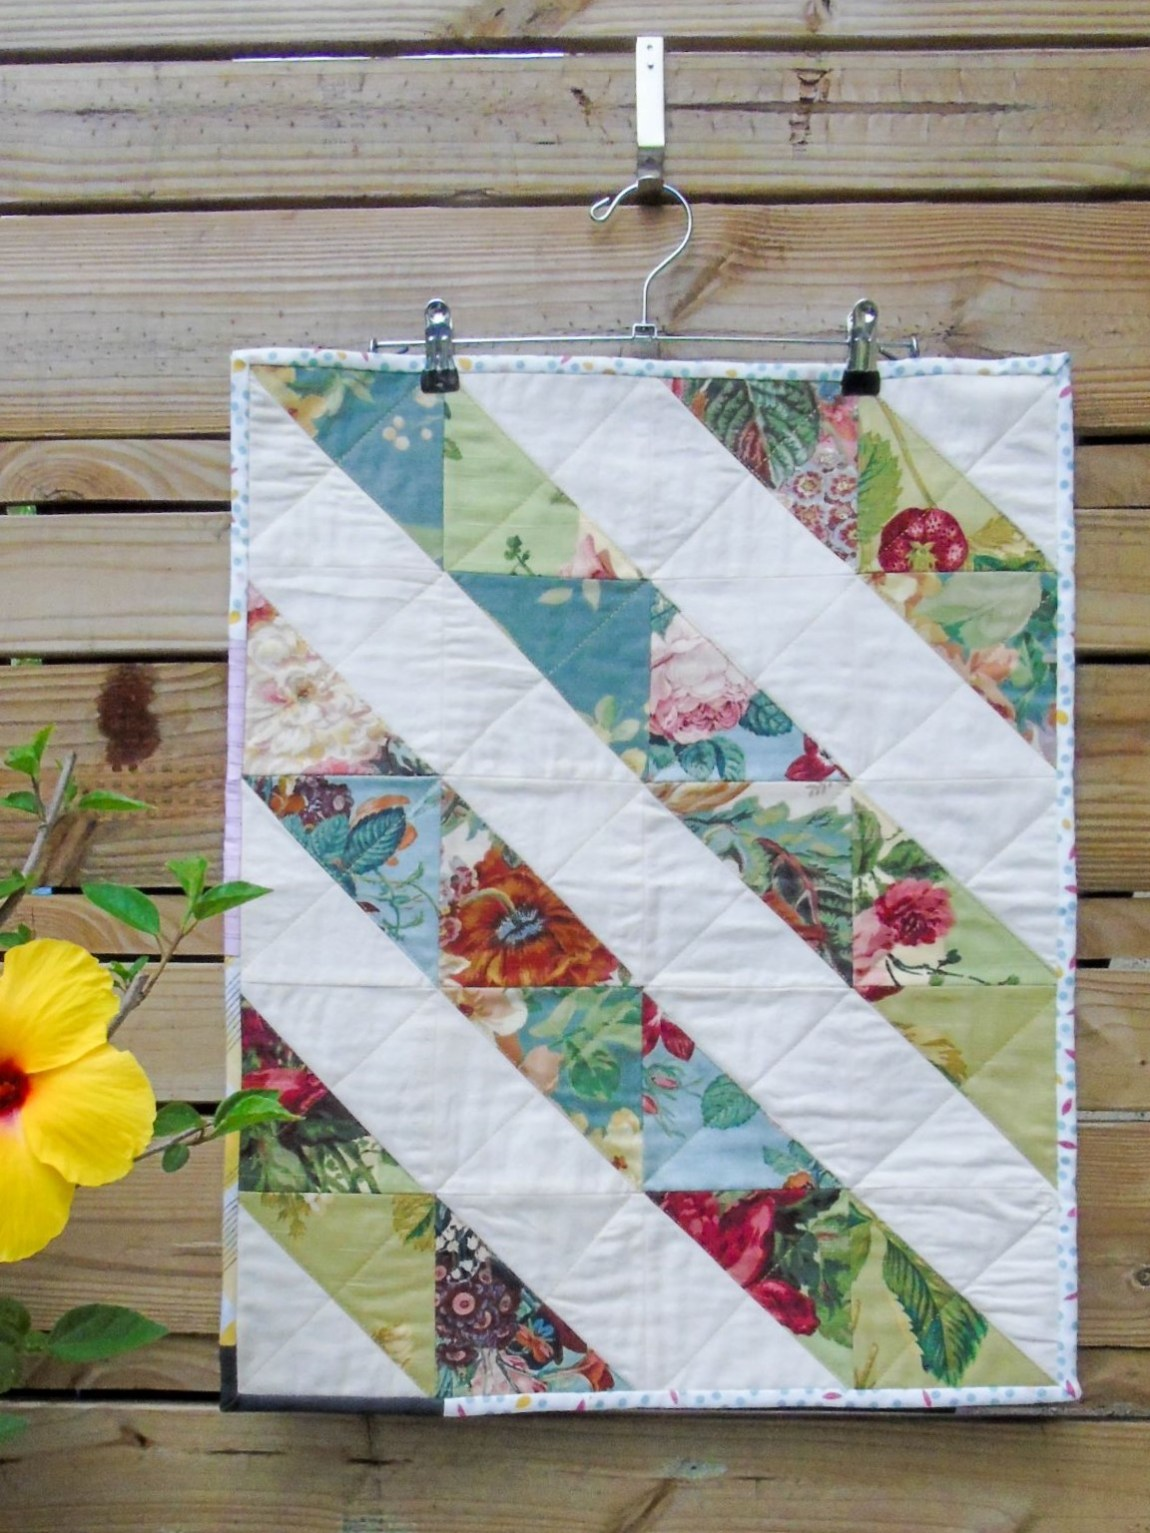 doll or wall hanging quilt with diagonal patchwork stripes using designer fabrics by lola & sofia